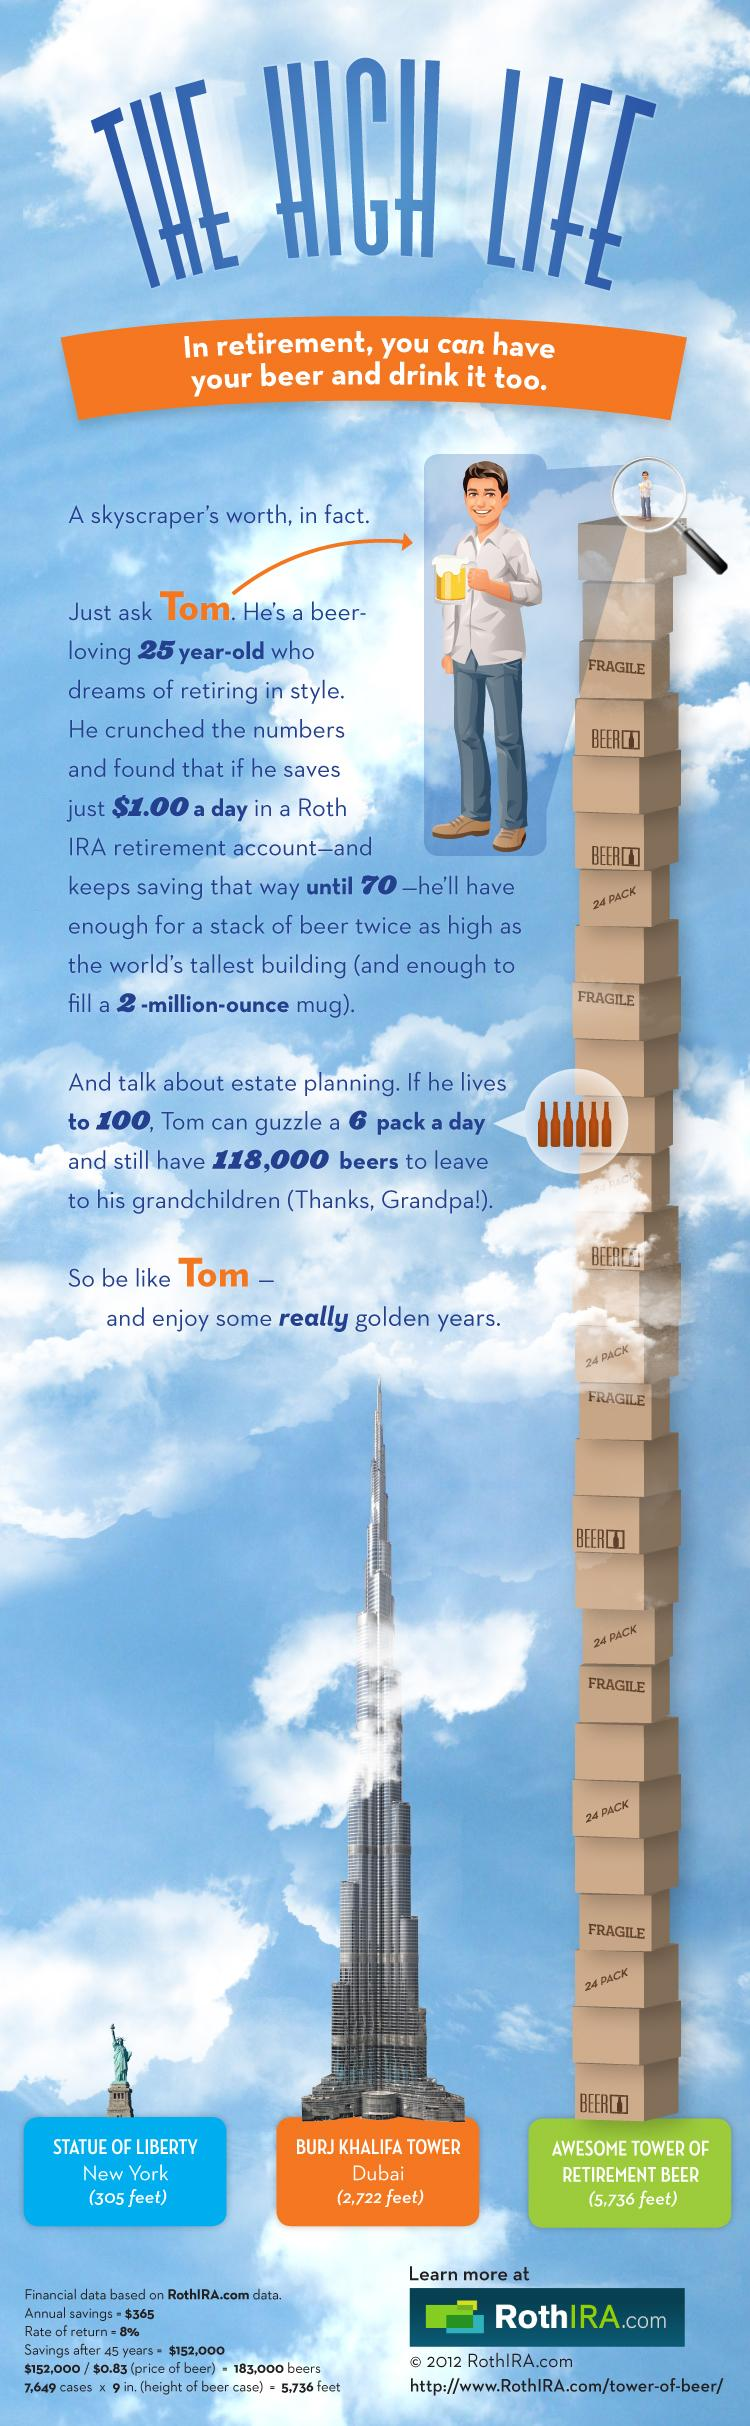 The Awesome Tower of Beer: RothIRA.com Infographic